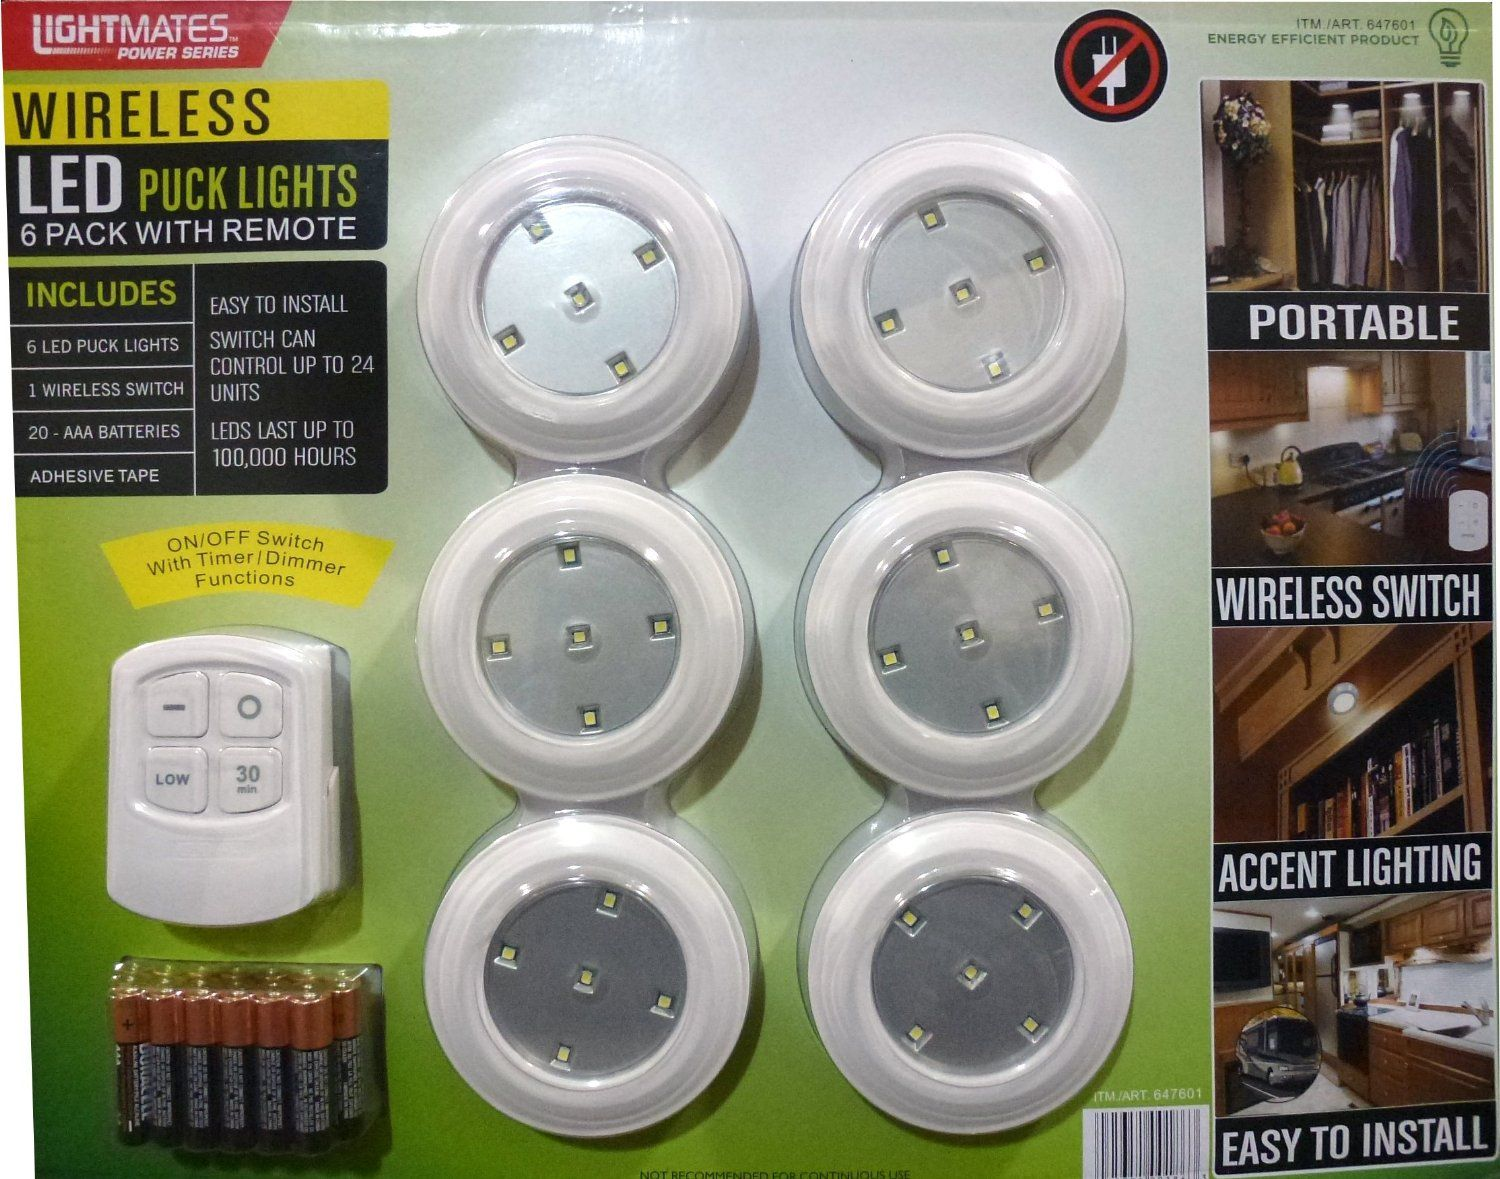 lightmates led wireless puck lights with remote & batteries - 6